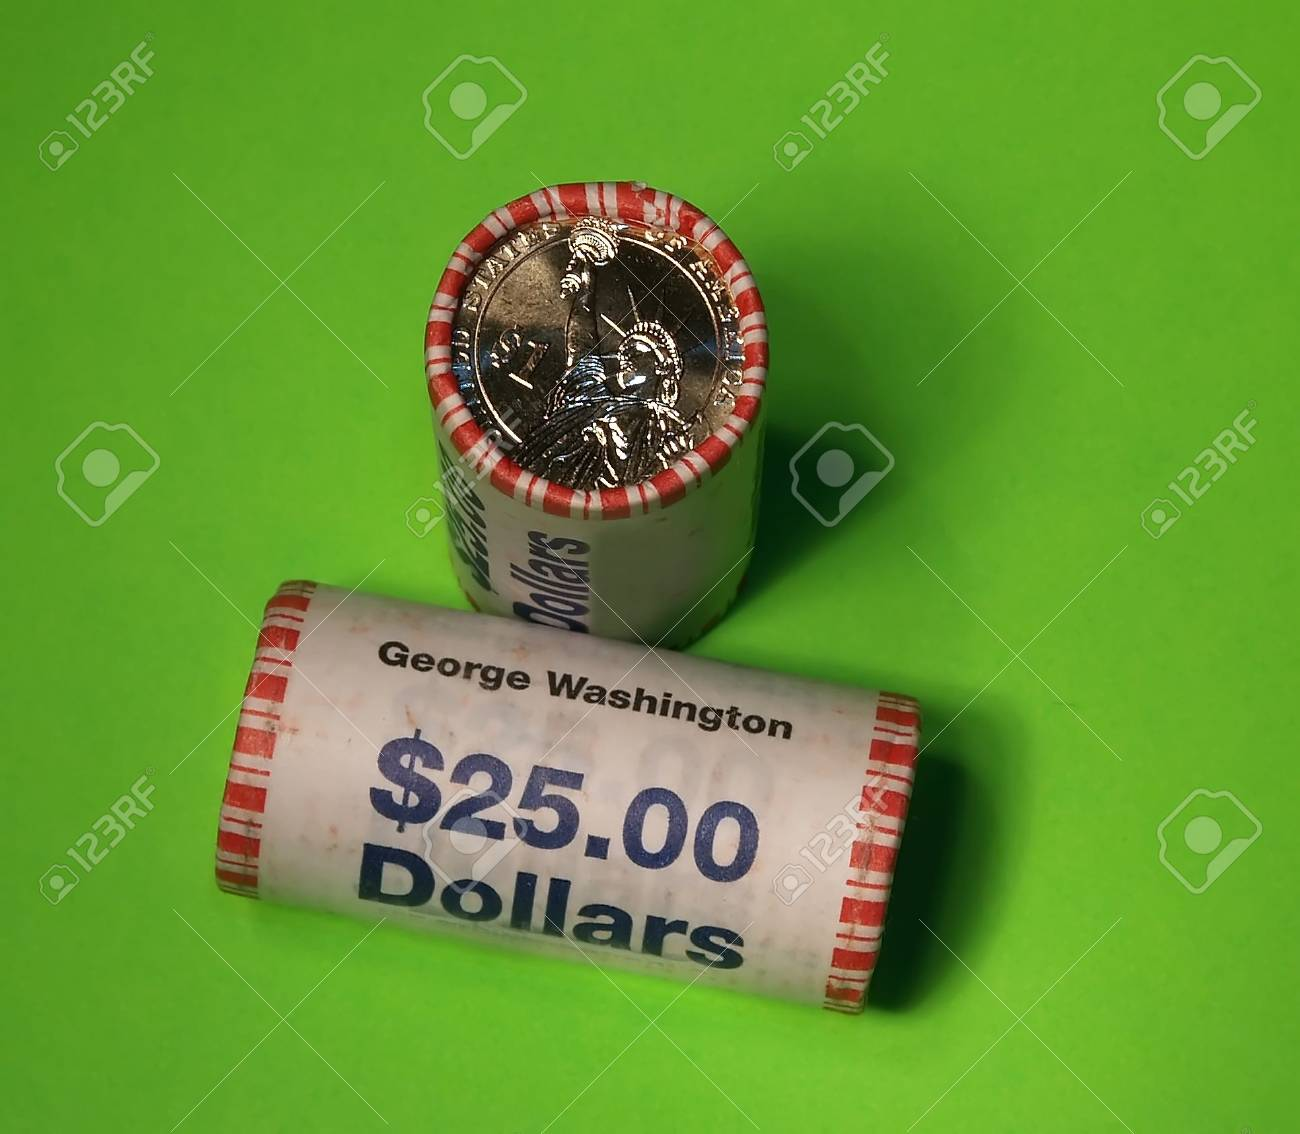 US government just issued new presidential dollar coins Stock Photo - 912206